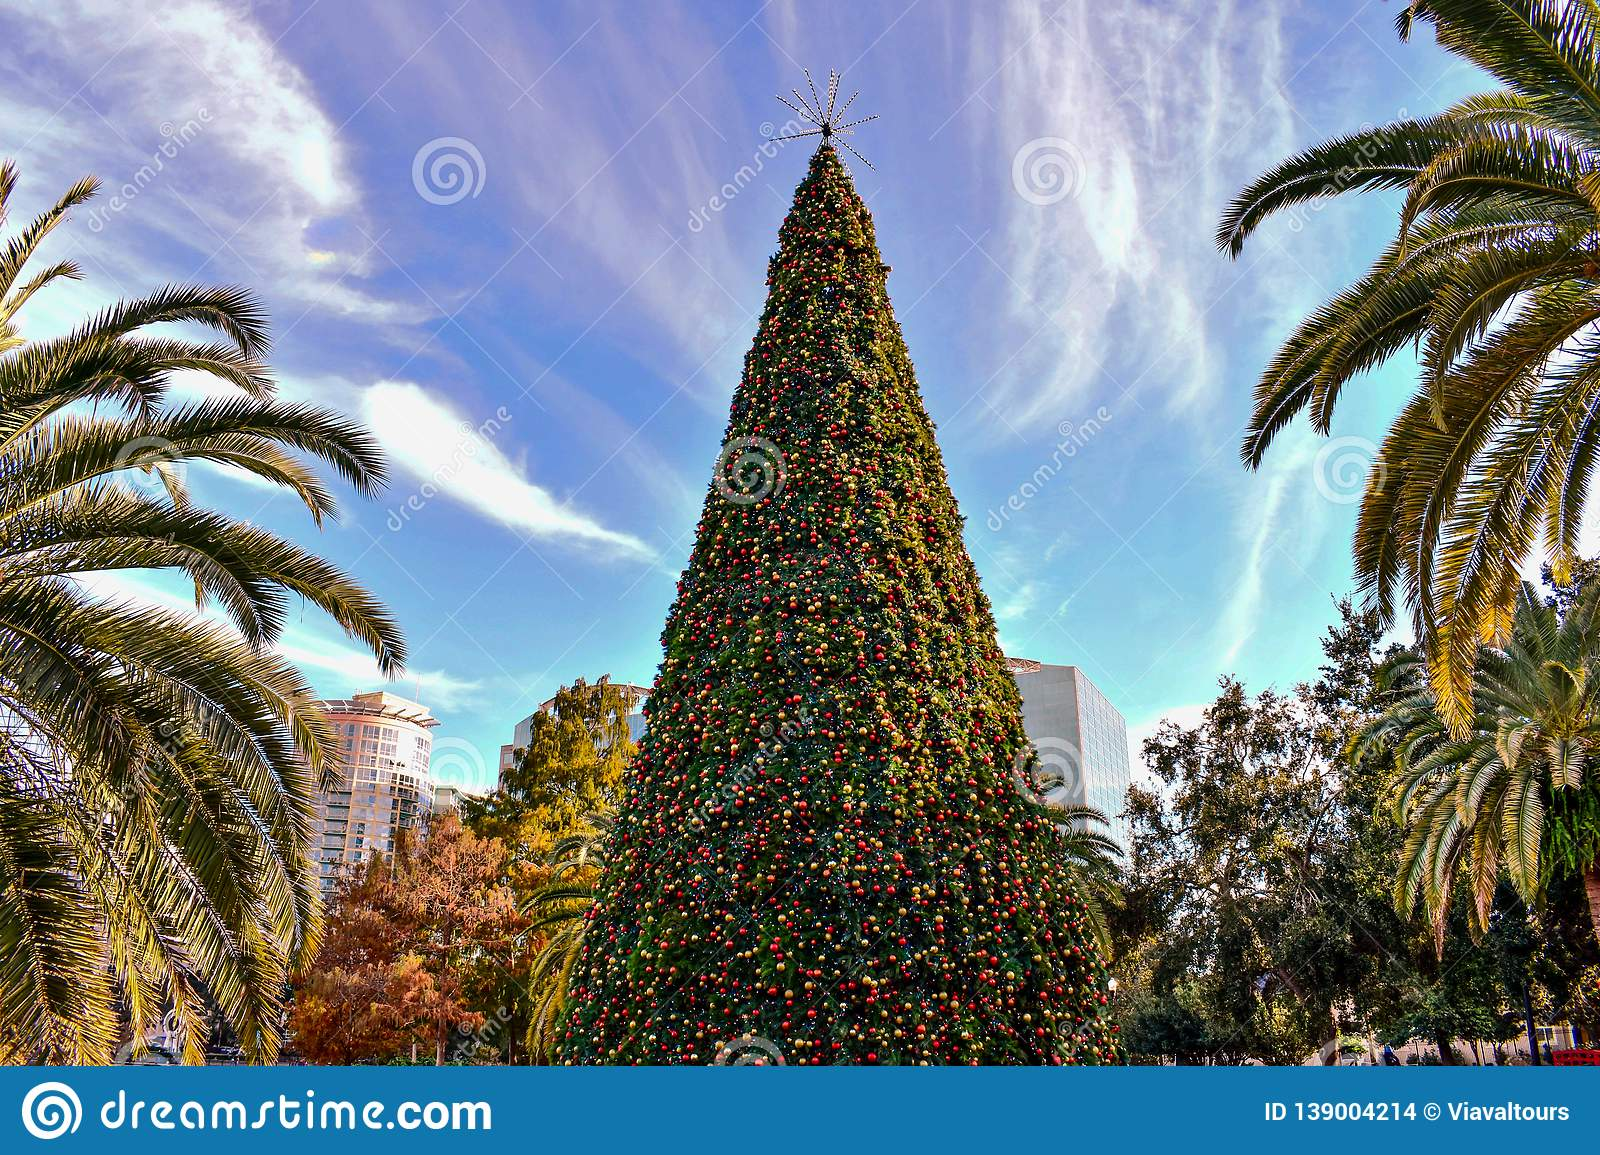 Top View Of Christmas Tree And Palm Trees In Lake Eola ...